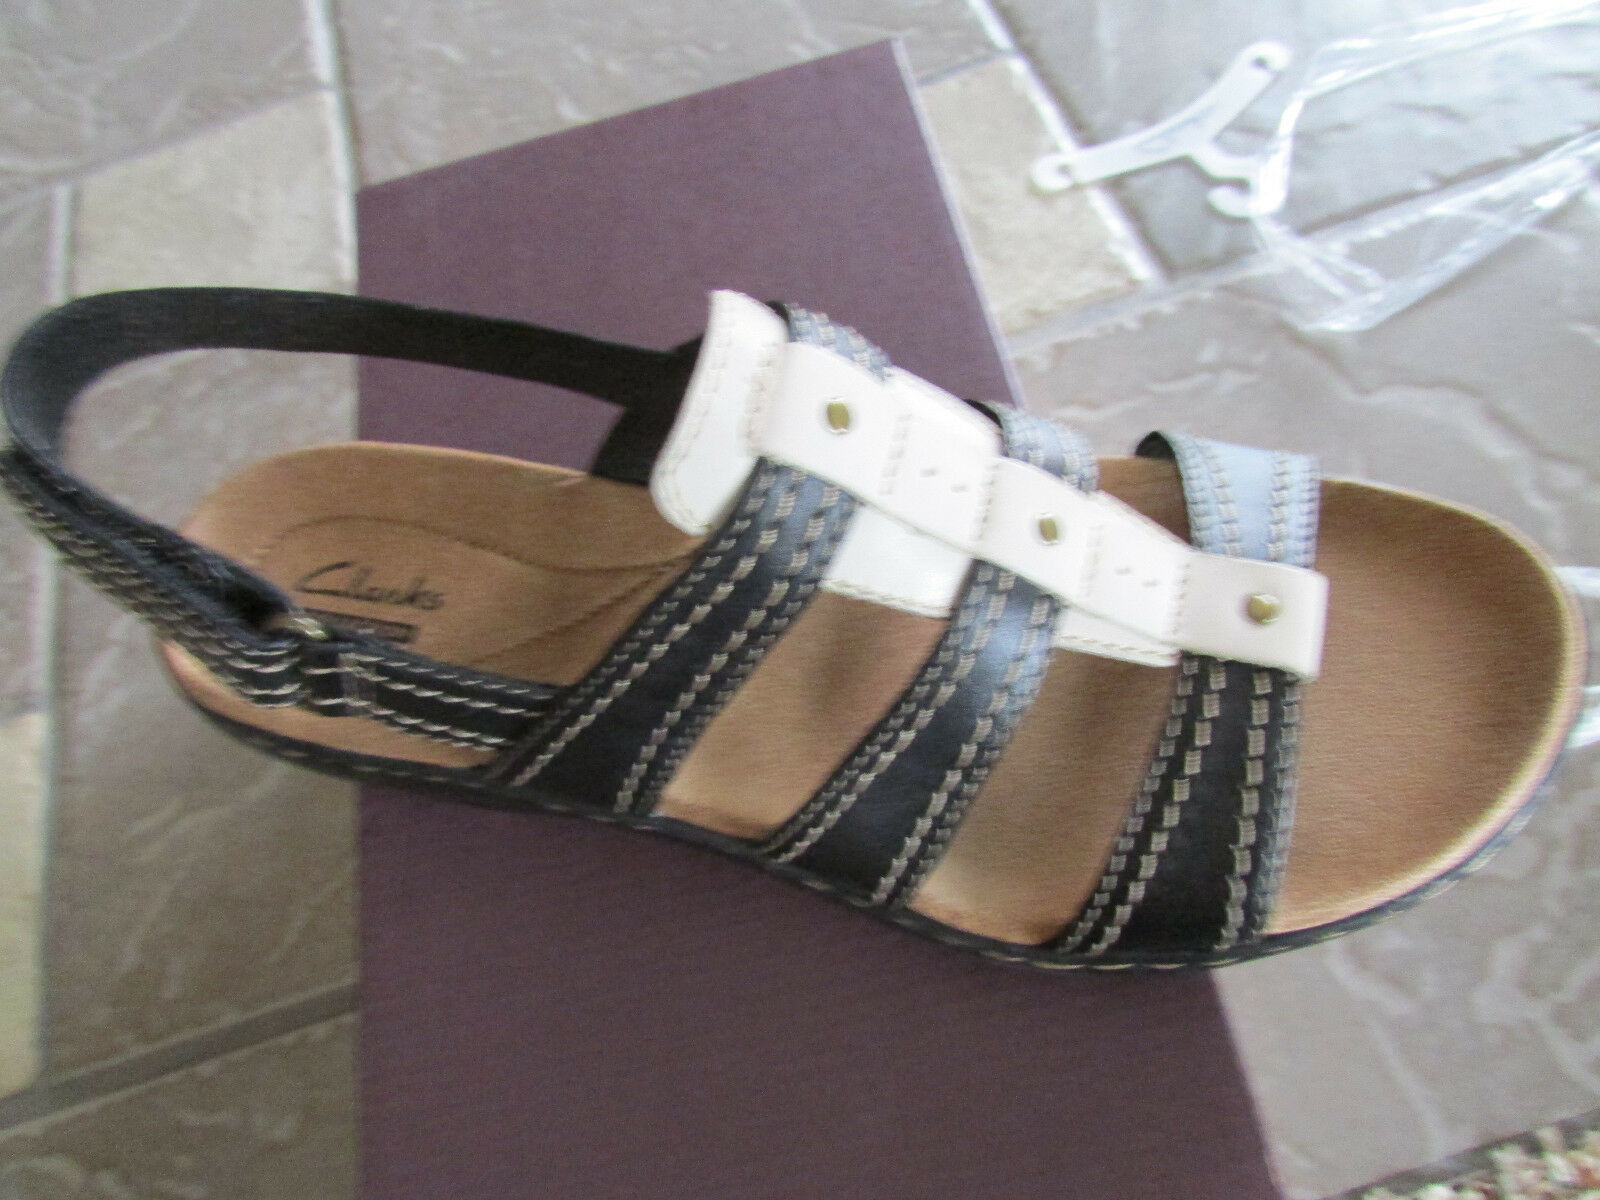 NEW CLARKS LEISA LEISA LEISA DAISY BLACK STRAPPY SANDALS WOMENS 7.5 STYLE  05192 FREE SHIP e2be9a